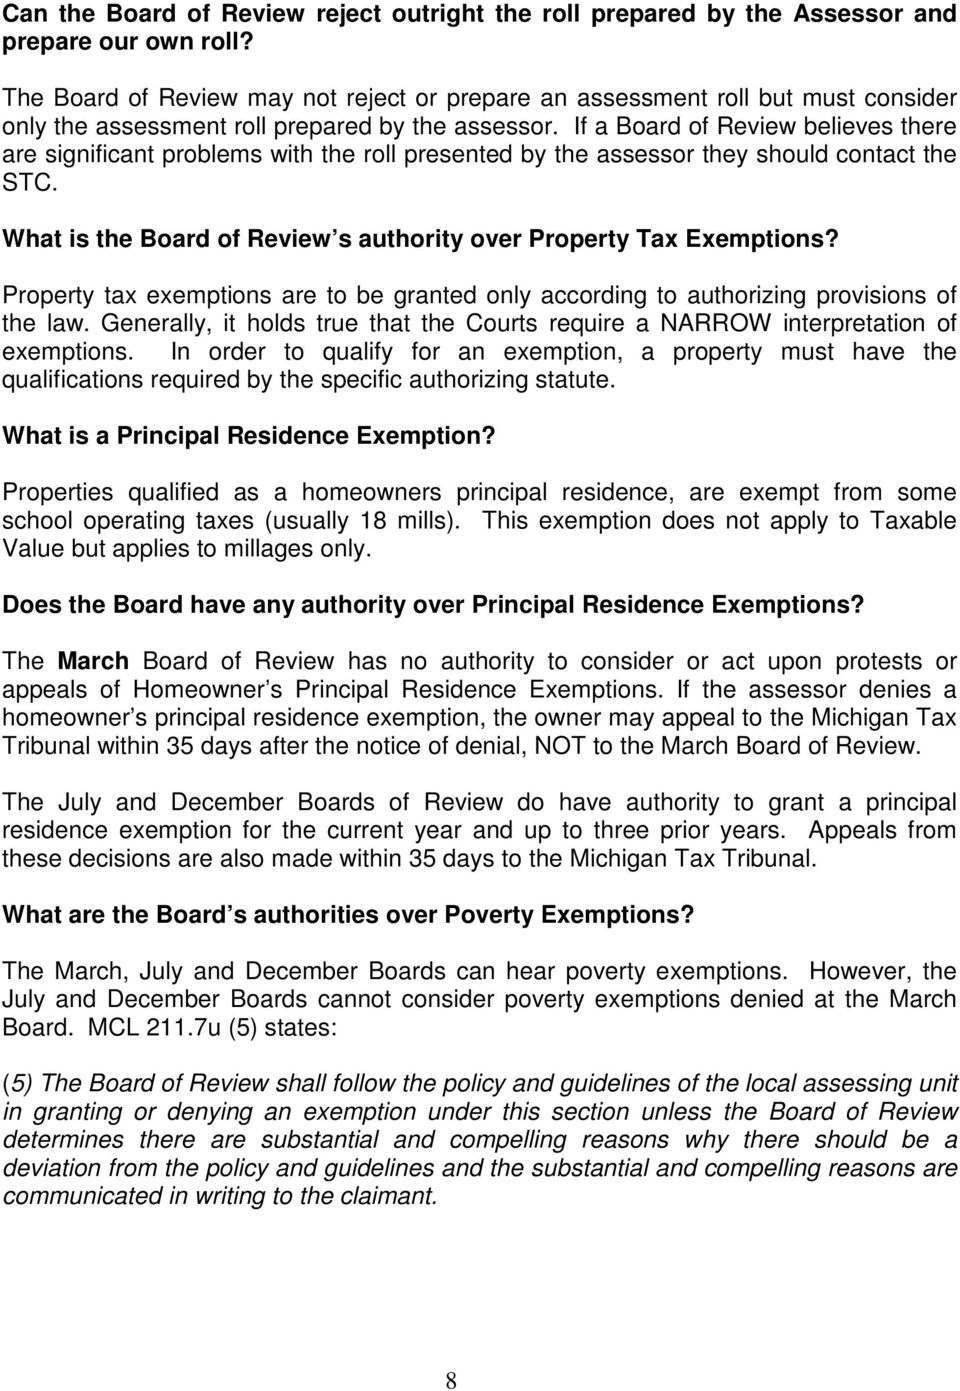 If a Board of Review believes there are significant problems with the roll presented by the assessor they should contact the STC. What is the Board of Review s authority over Property Tax Exemptions?